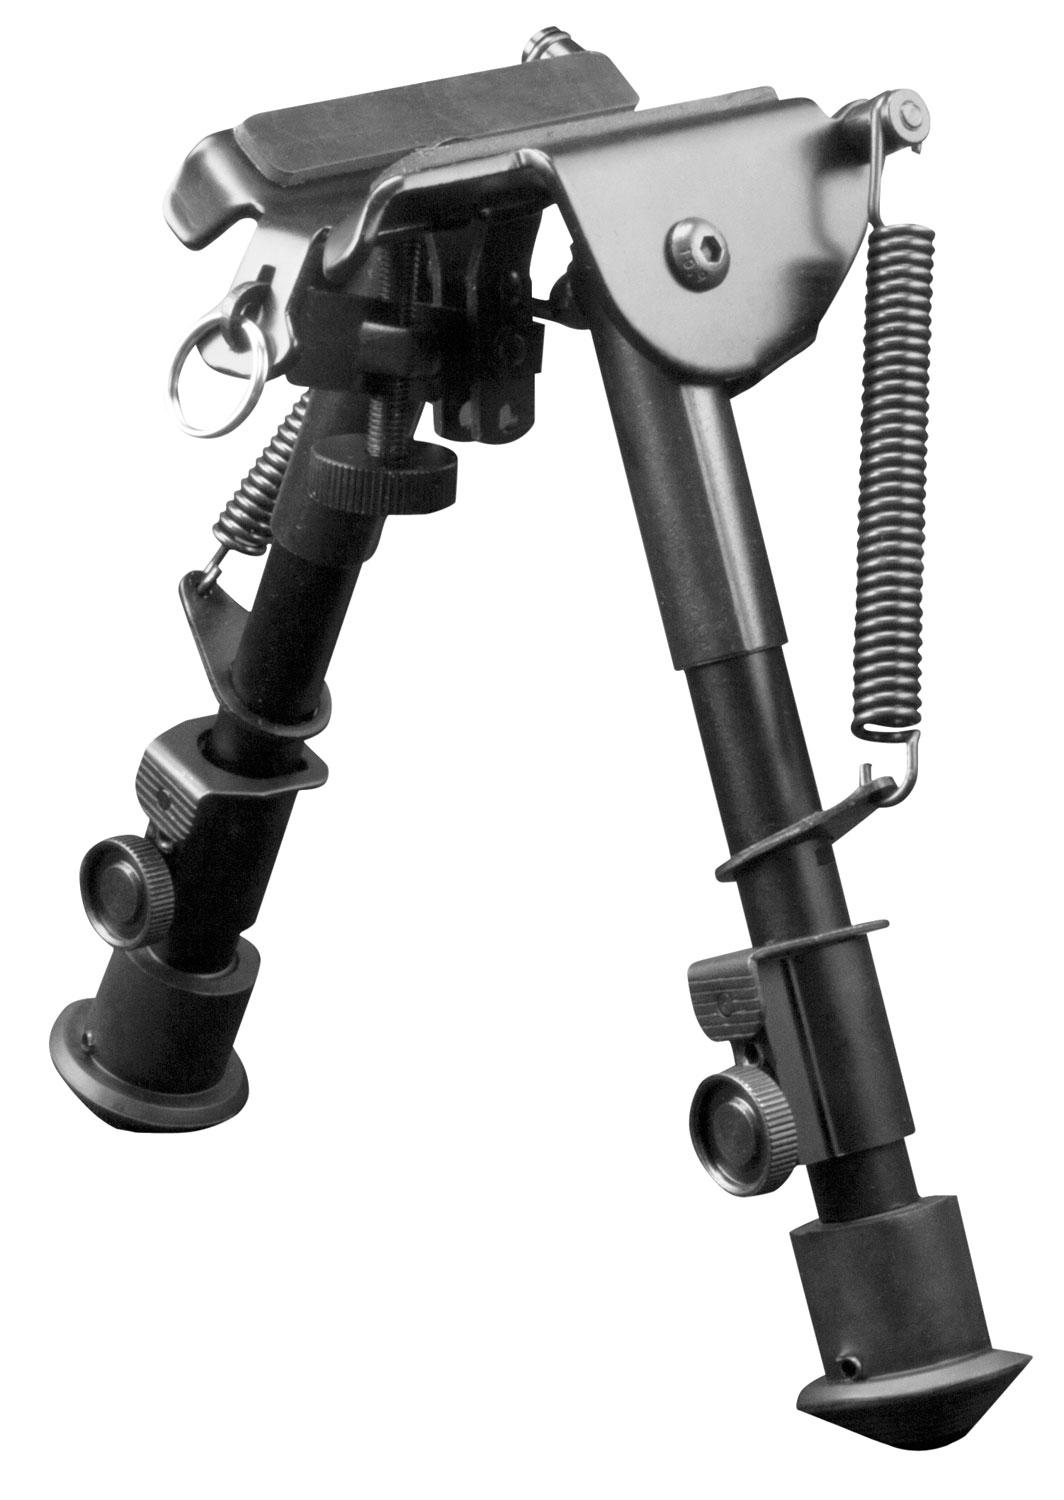 Aim Sports Bphs01 H- Style Bipod Black Aluminum And Carbon Steel 6.5- 9